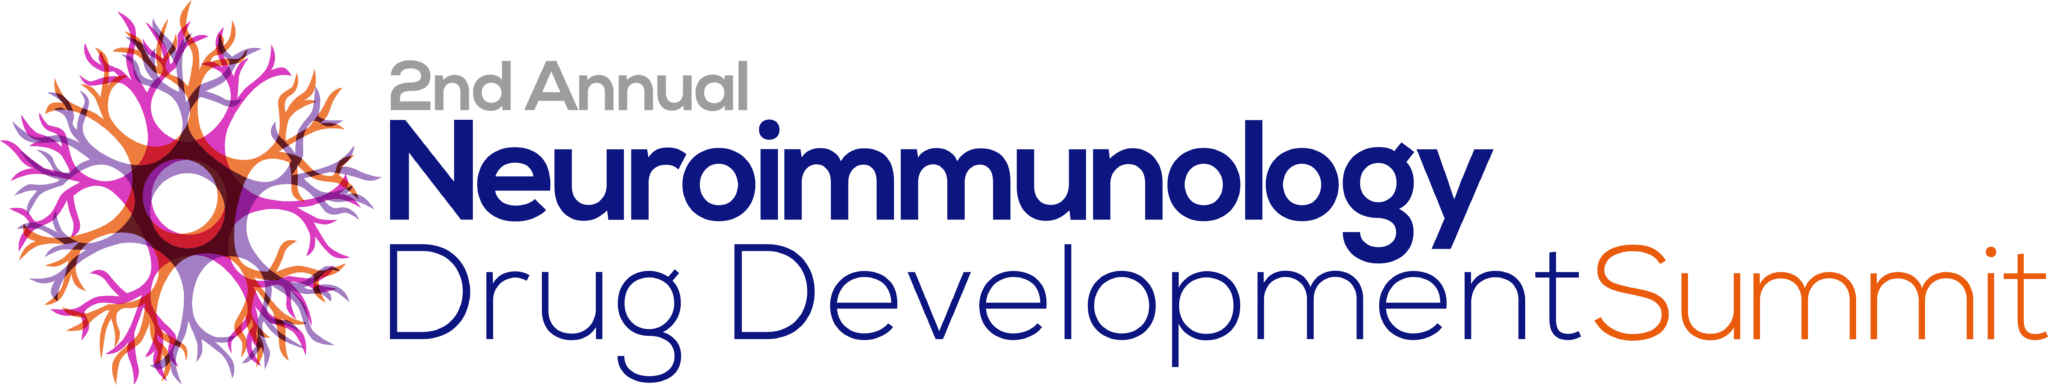 HW191109 NIDD 2nd Annual Neuroimmunological Drug Development logo